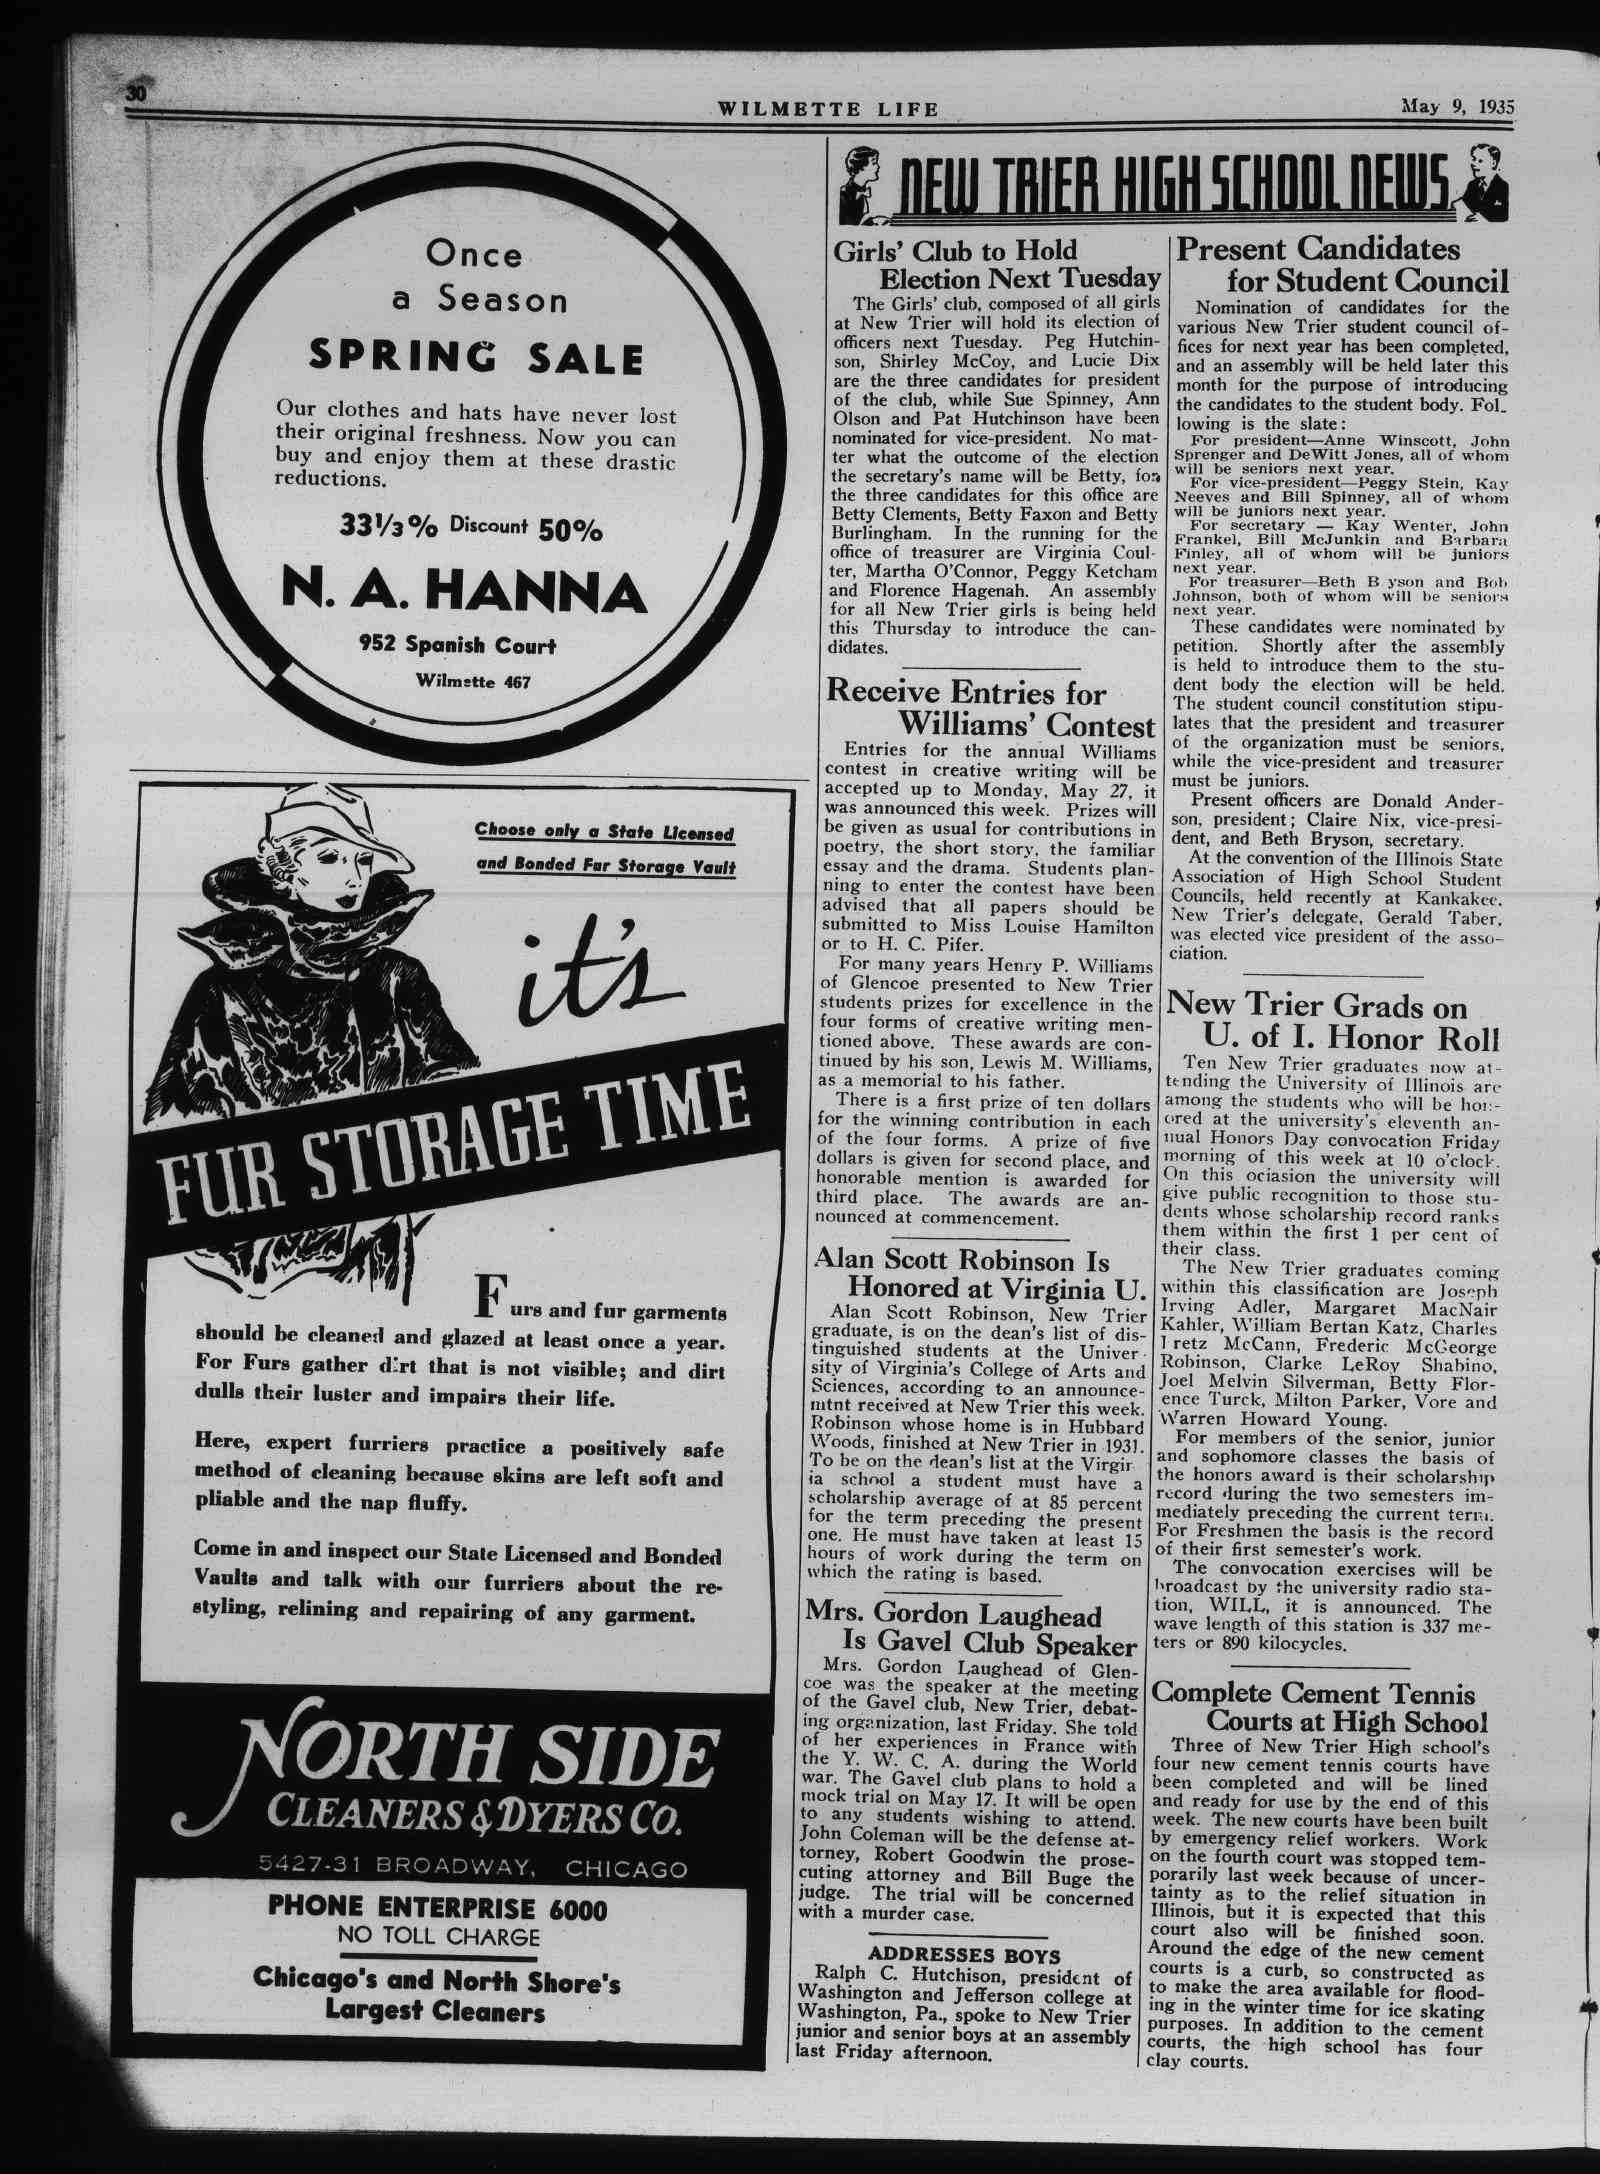 Wilmette Life (Wilmette, Illinois), 9 May 1935